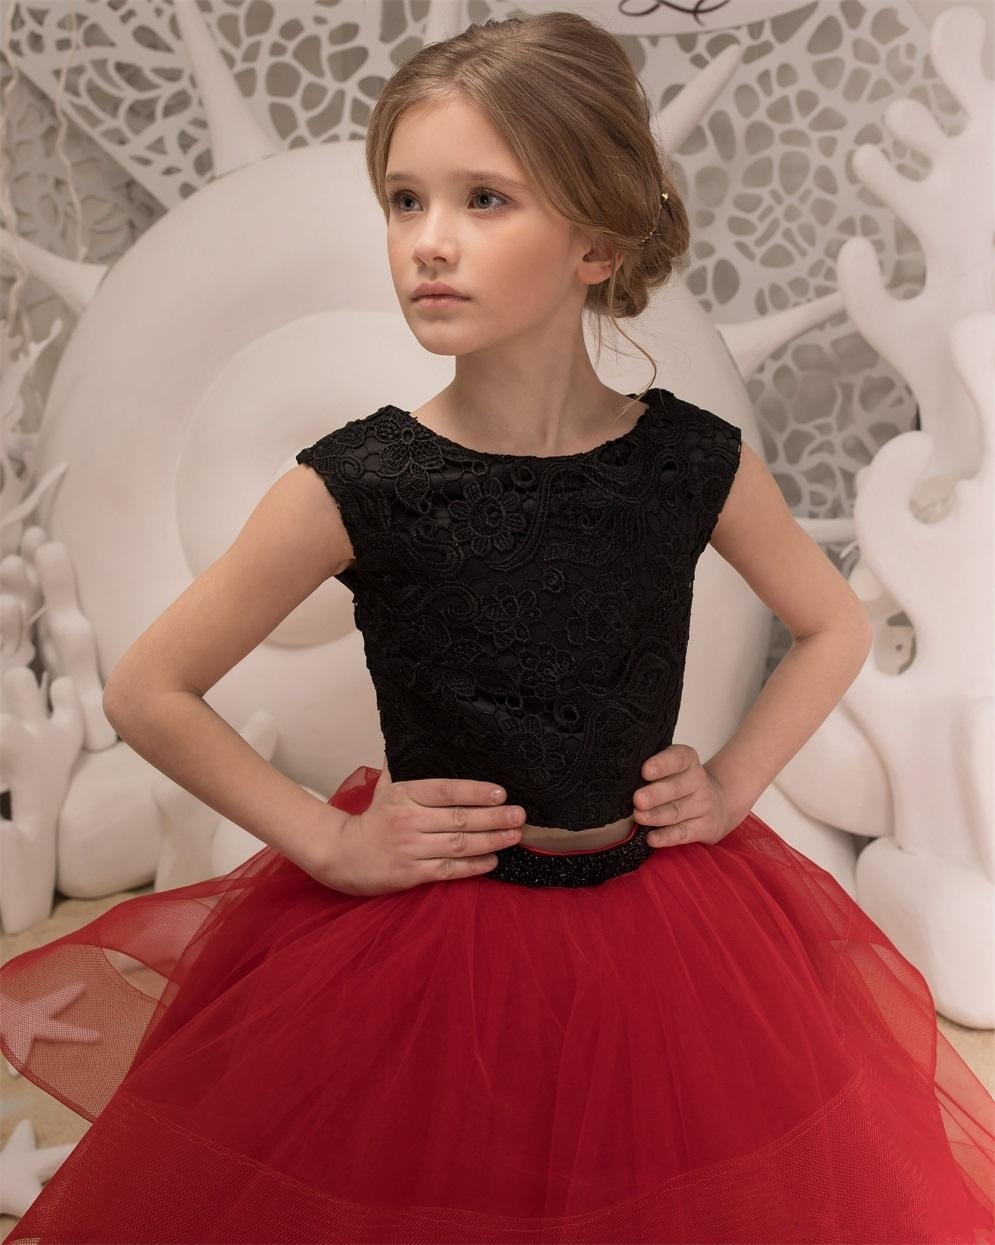 black-and-red-flower-girls-dresses-2018-ruffles (3)_conew1 -